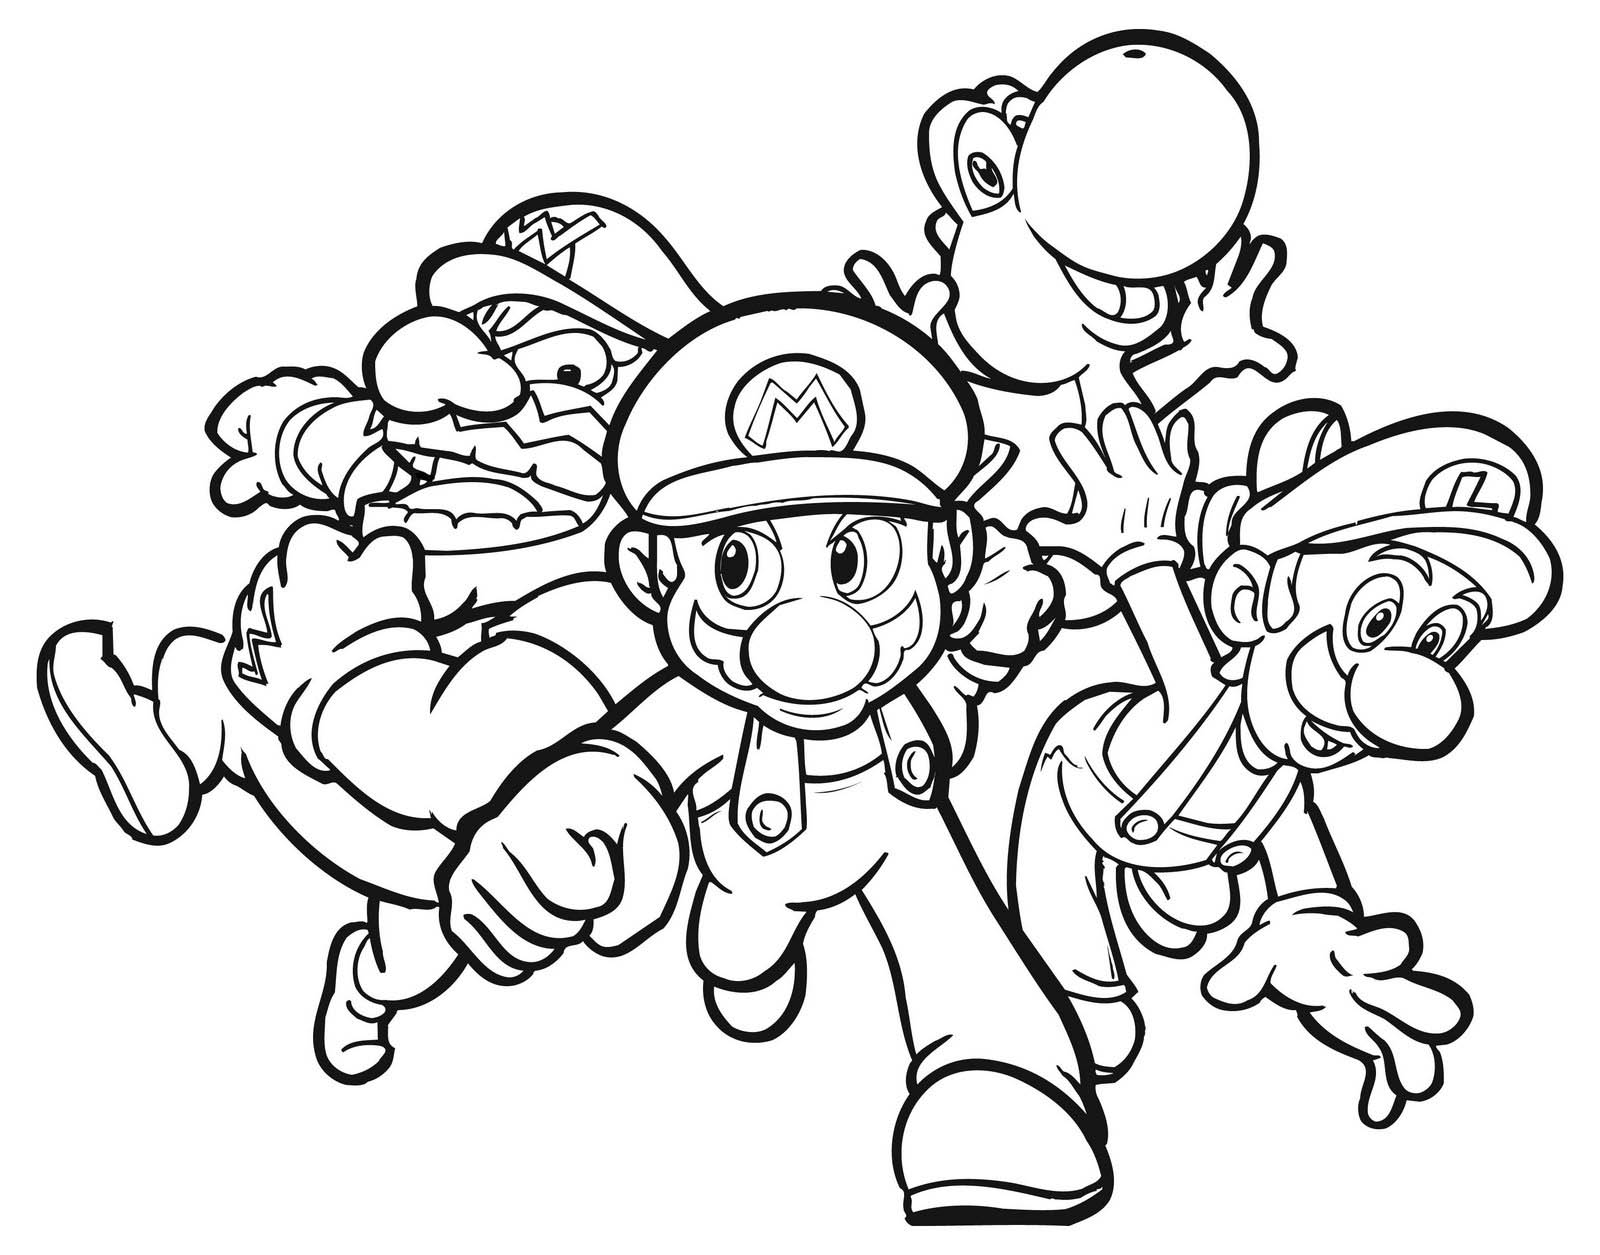 Mario bros coloring pages - Mario Bros Coloring Pages